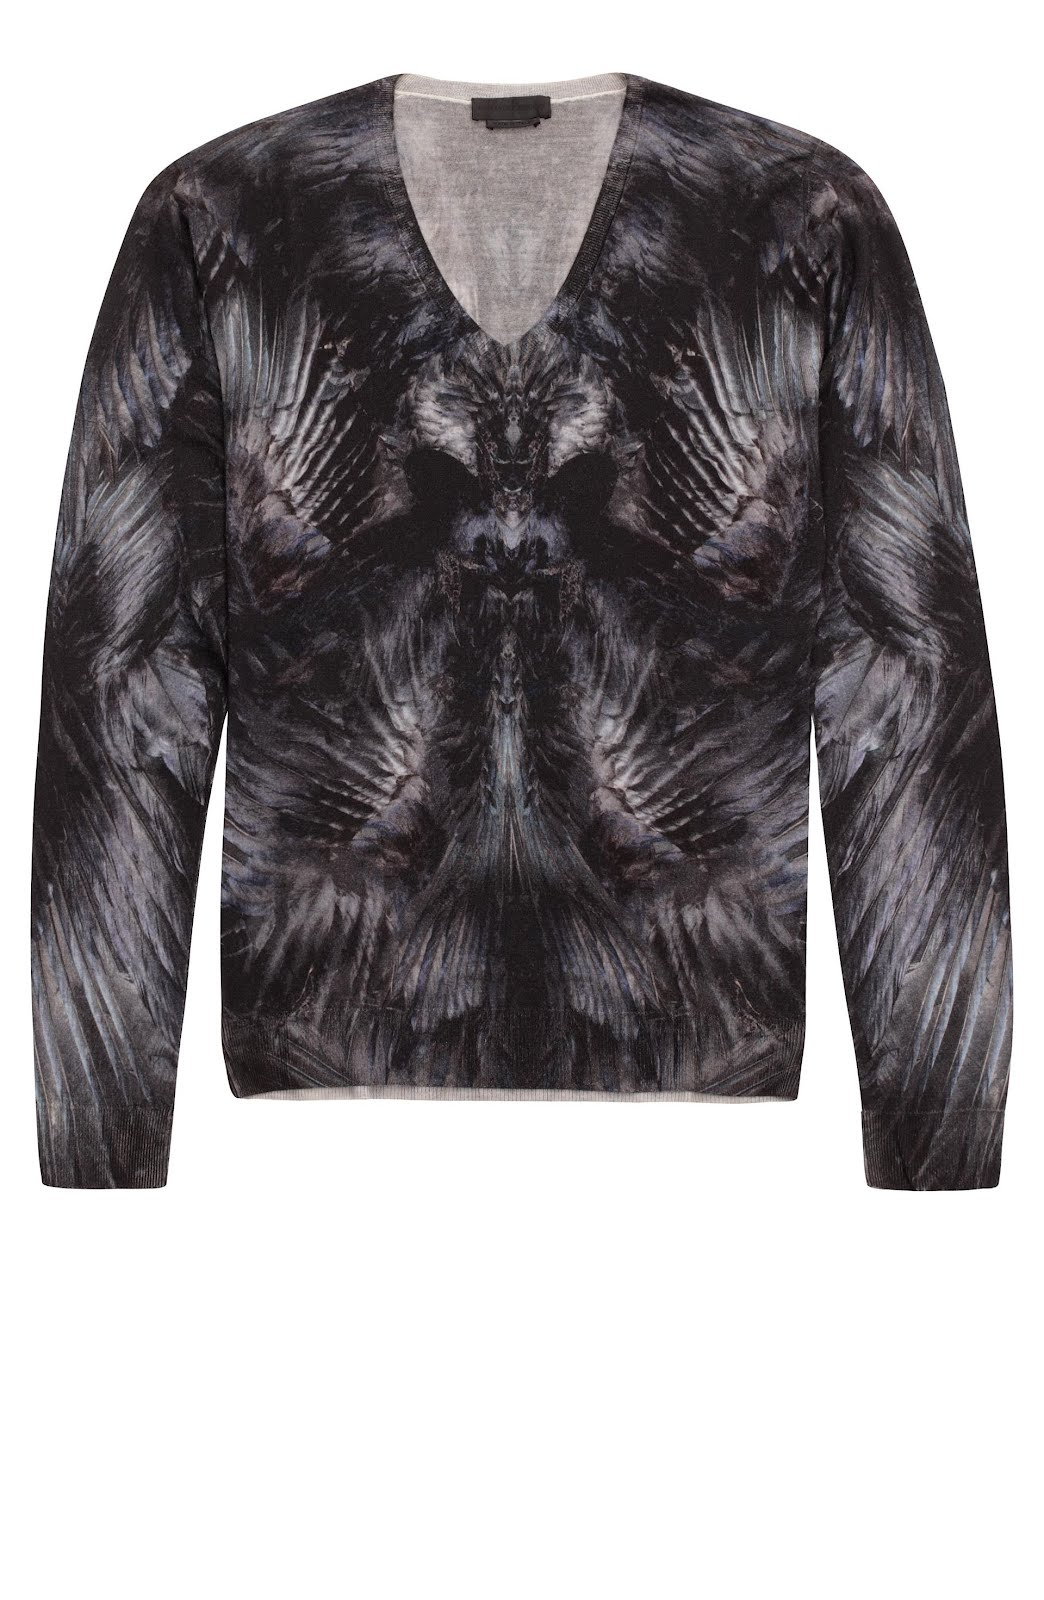 00O00 London Menswear Blog Drake 2012 MTV Video Music Awards Alexander McQueen Raven print sweater